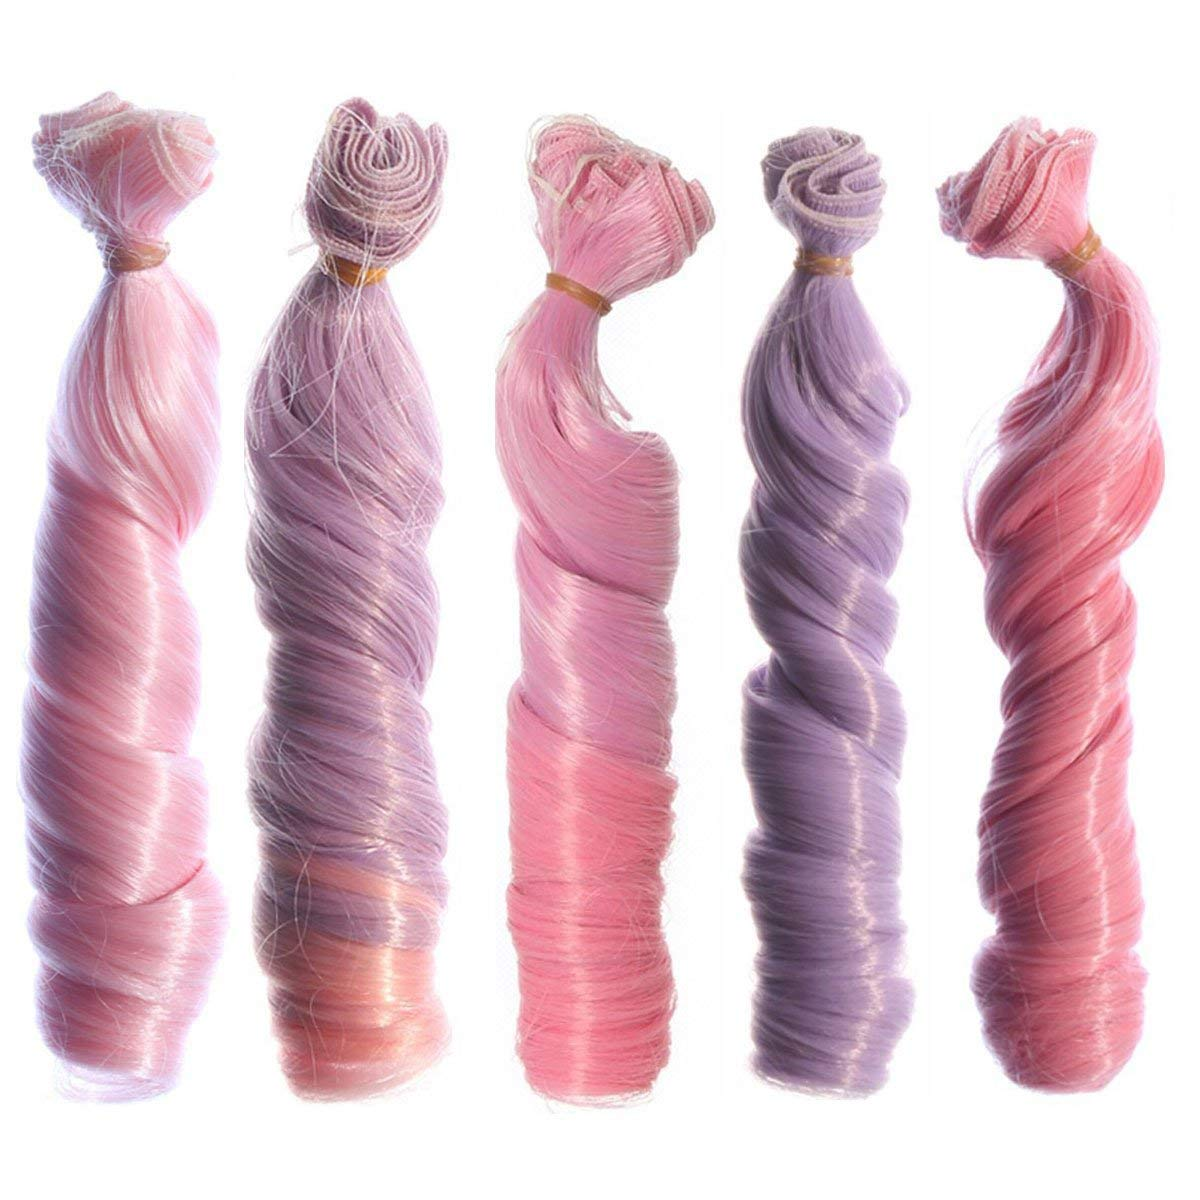 5pcs//lot,New Arrival 5.90x39.37Heat Resistant Big Curly Synthetic Hair Weft Deep Wavy Hair Extensions for DIY BJD//SD//Bly the//American Girl Doll Wigs